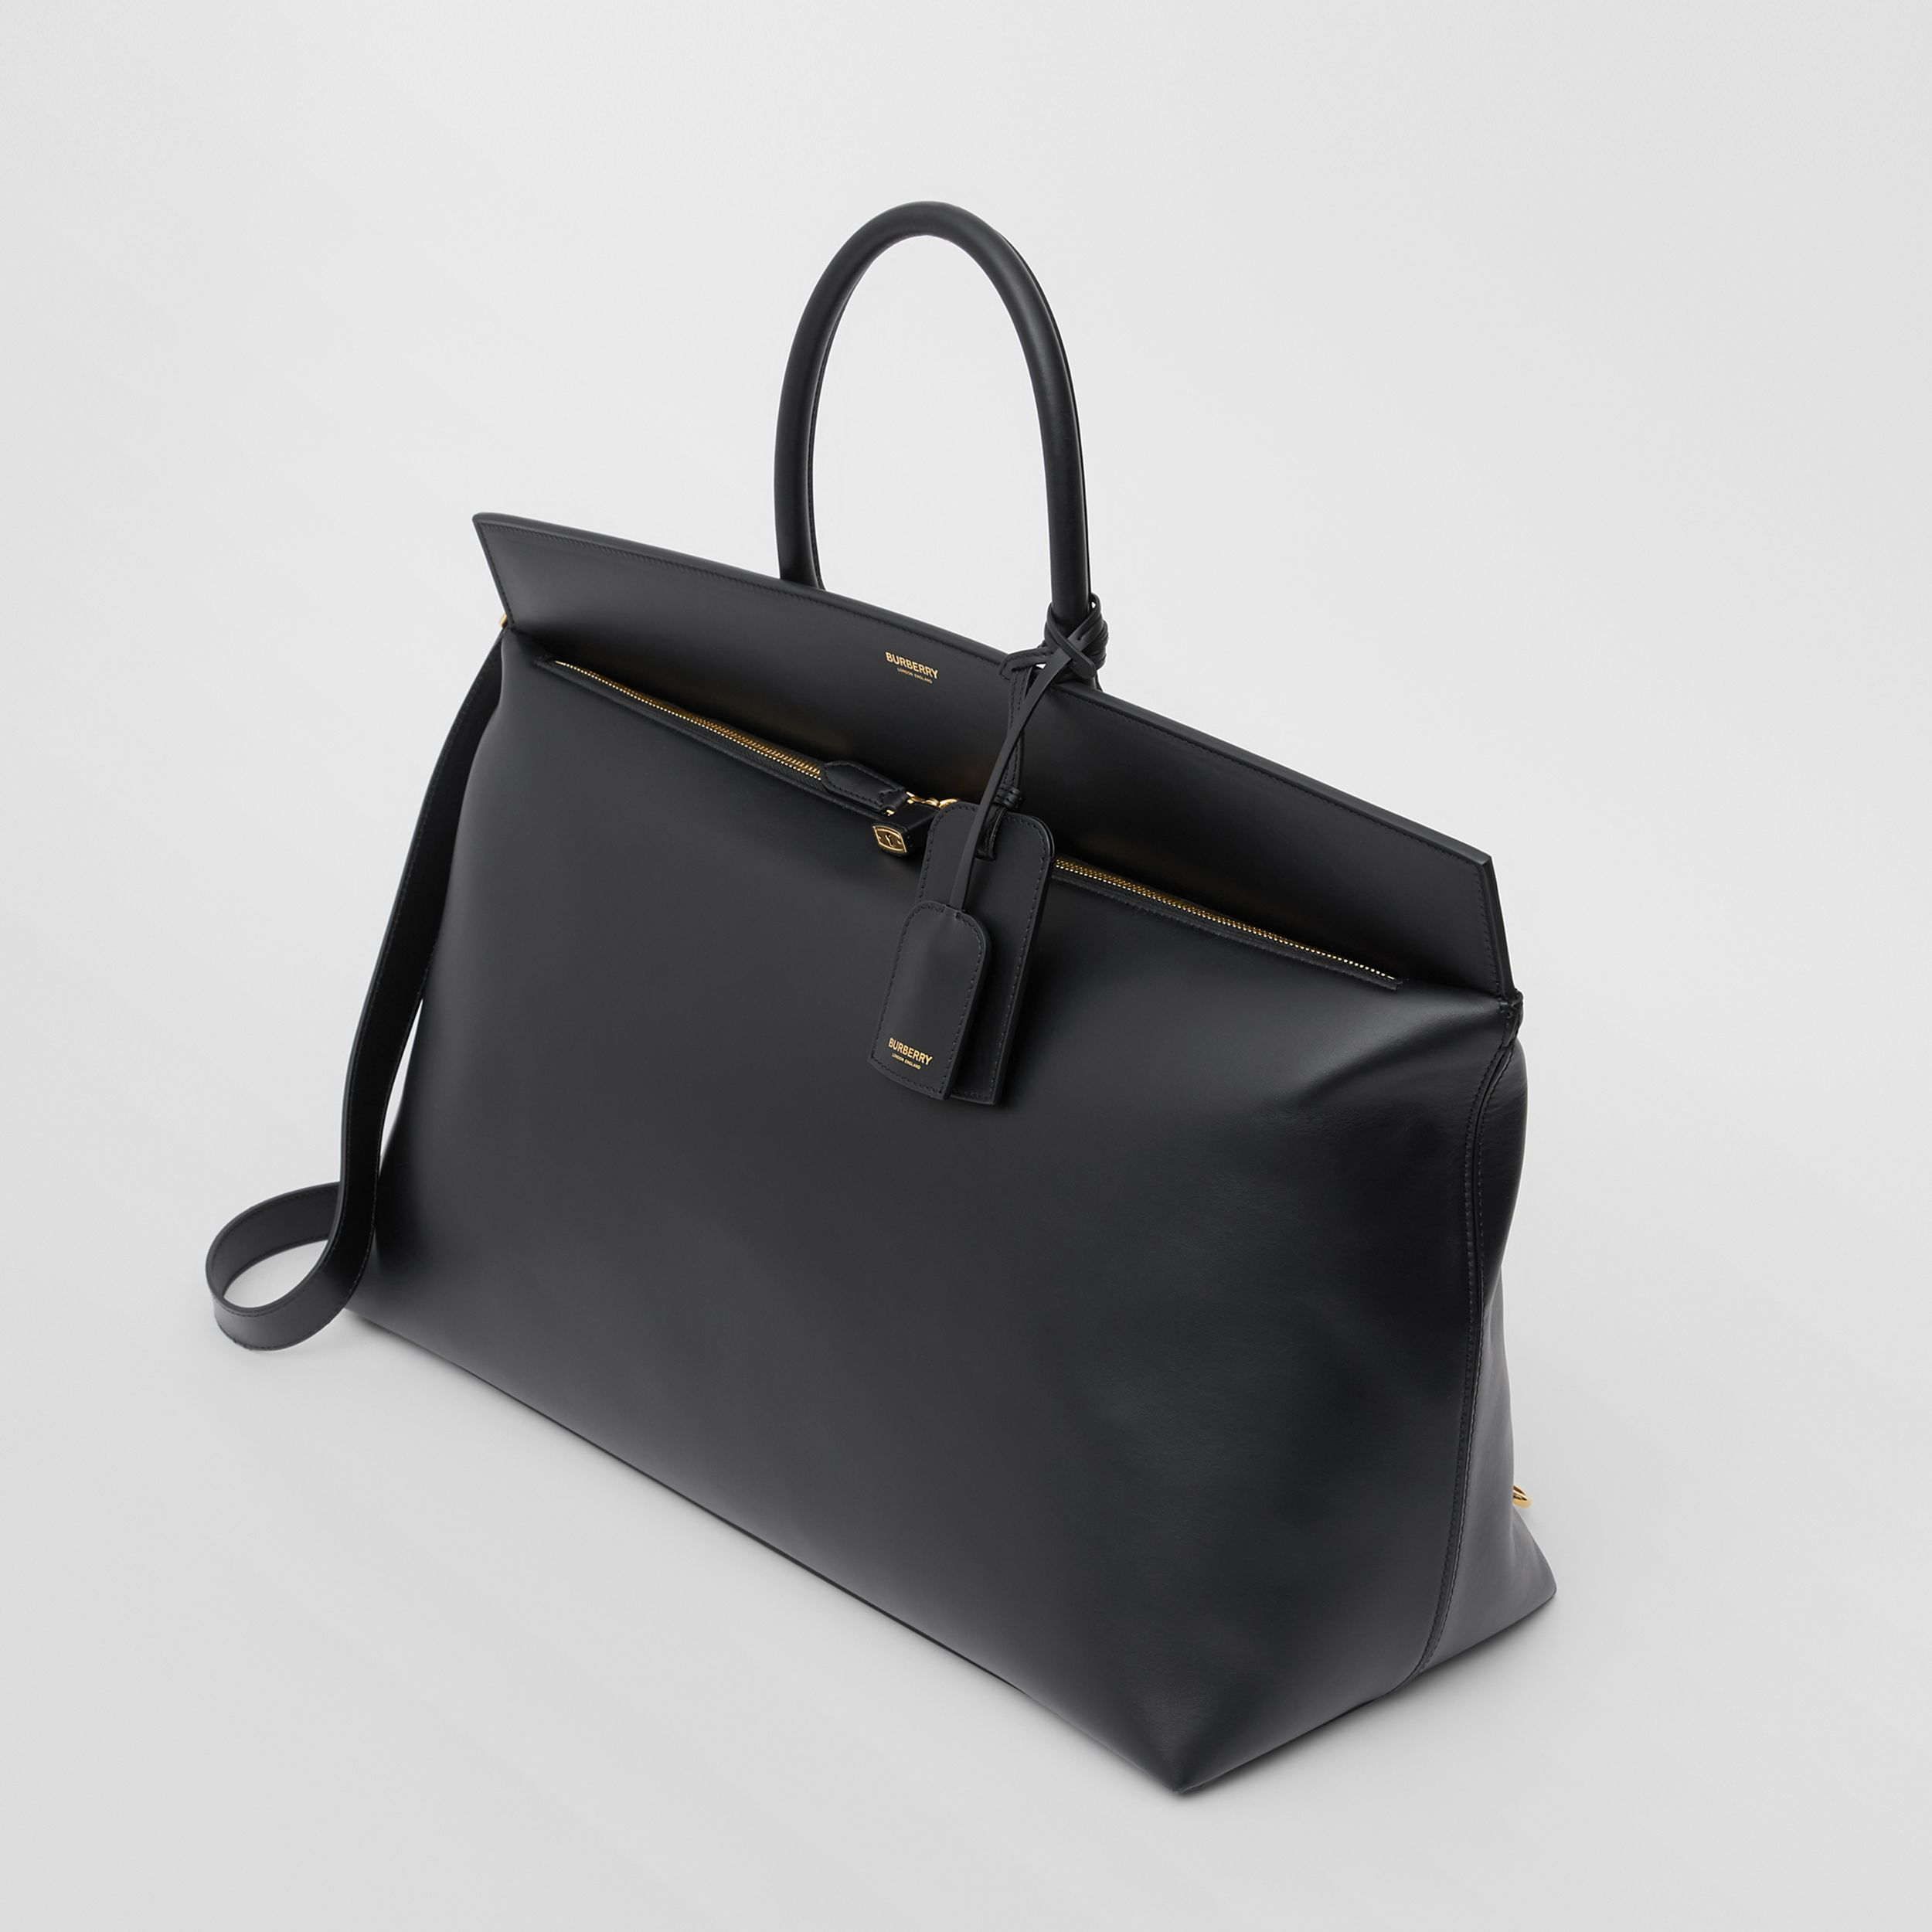 Extra Large Leather Society Top Handle Bag in Black | Burberry - 4